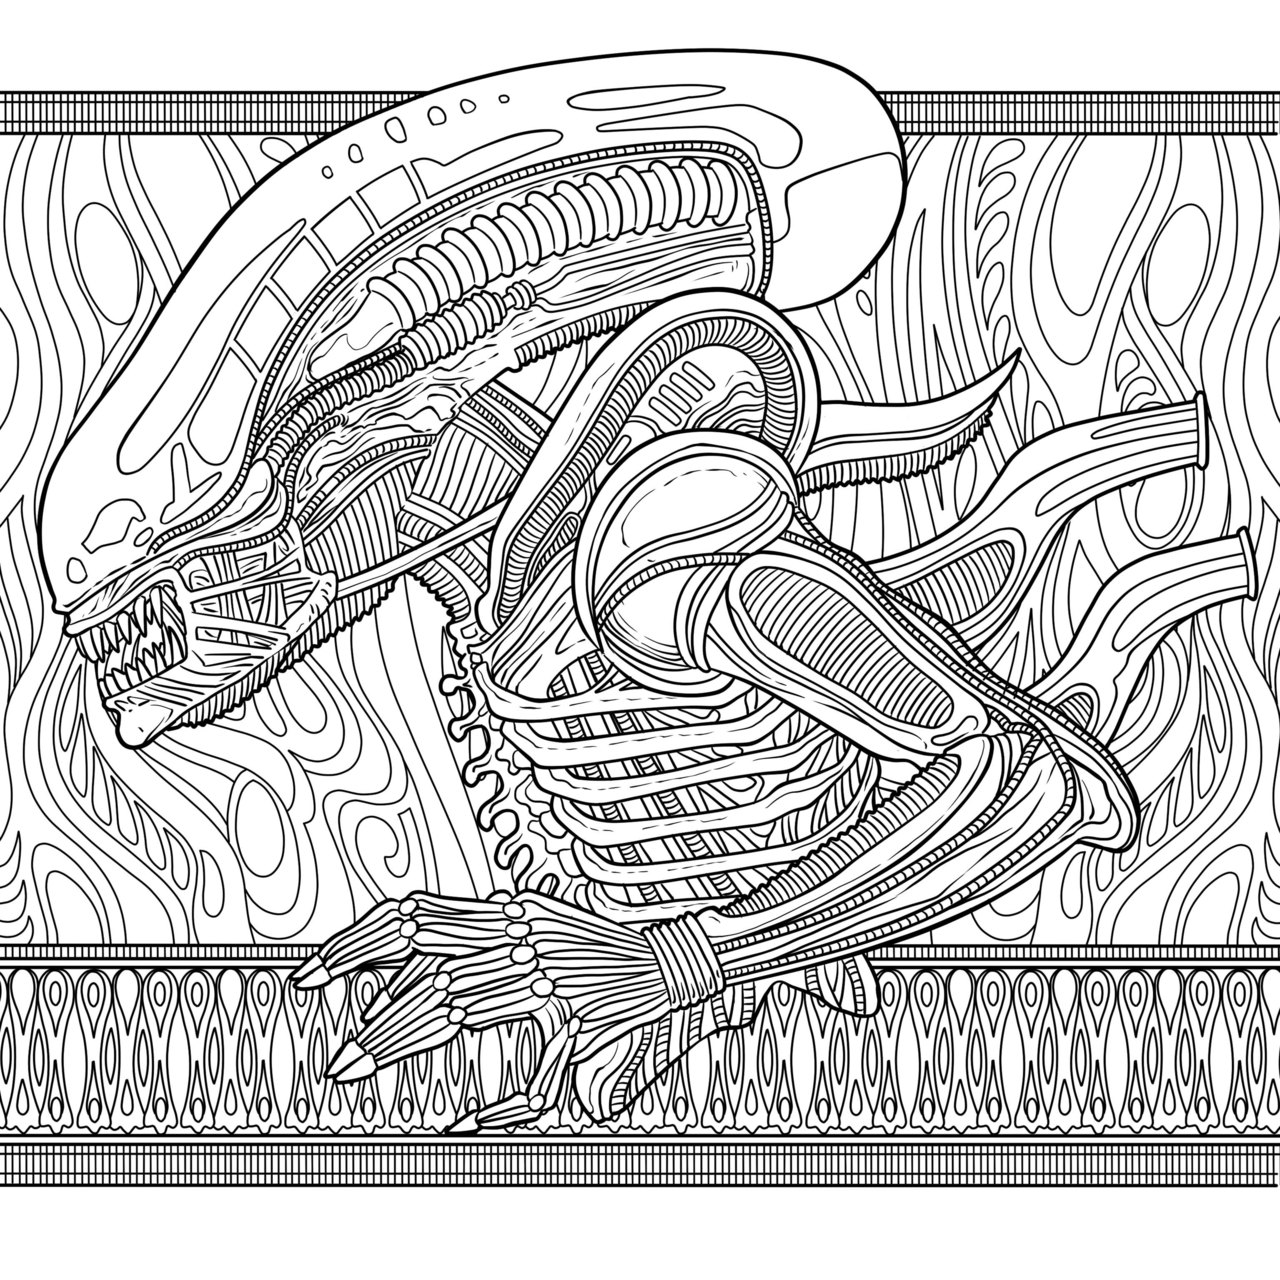 Alien the coloring book review borg com Xenomorph Alien Queen Birth Dragon Queen Coloring Pages Xenomorph Swiming